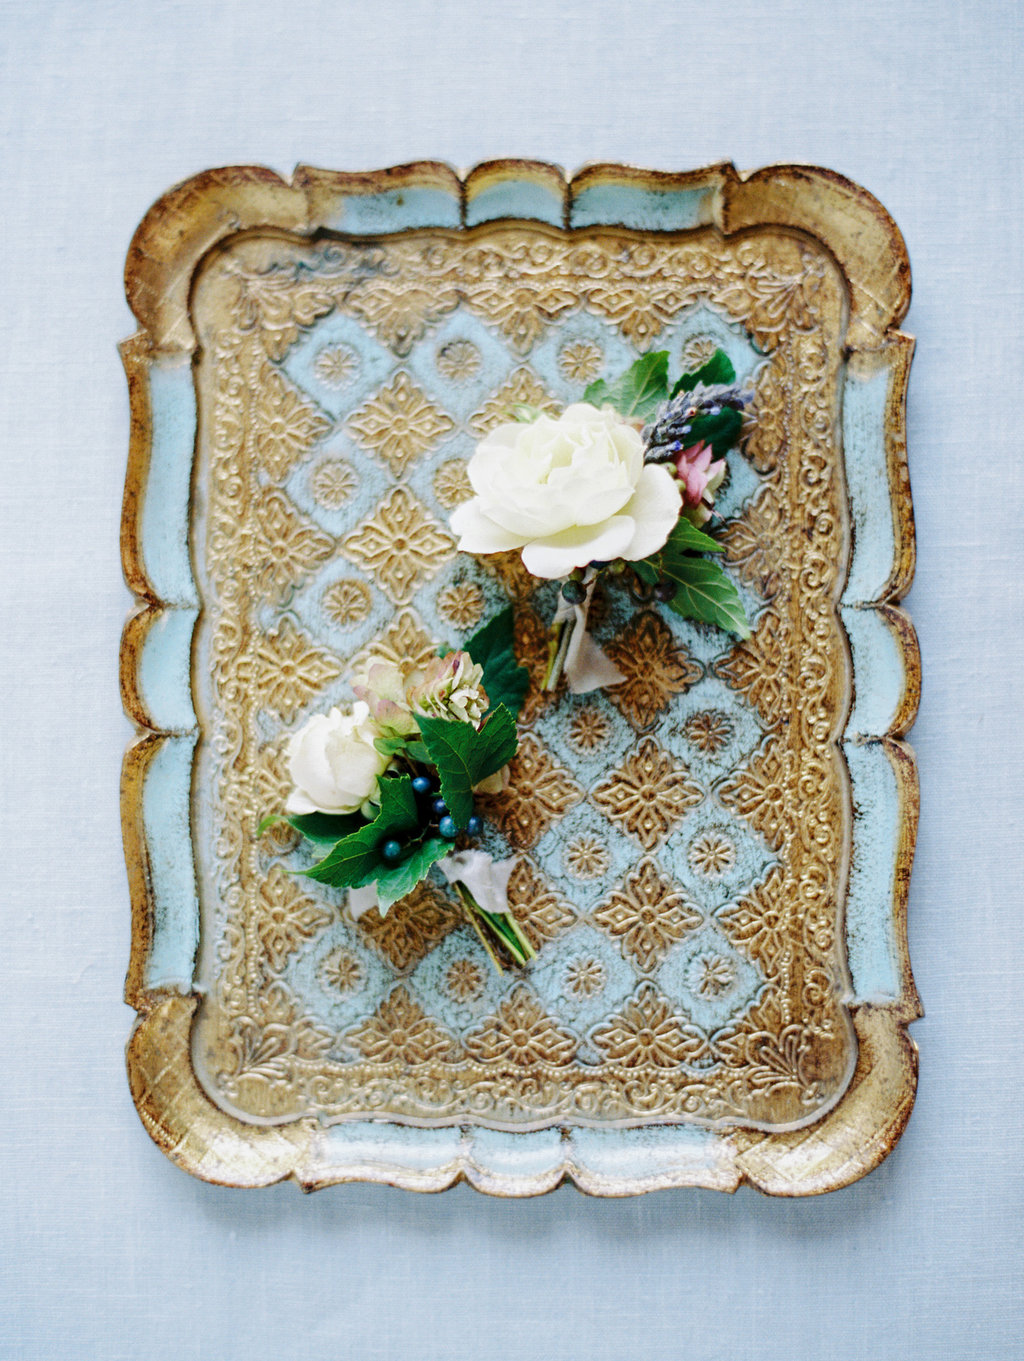 Southern Vintage florentine tray - Ryan Ray photography